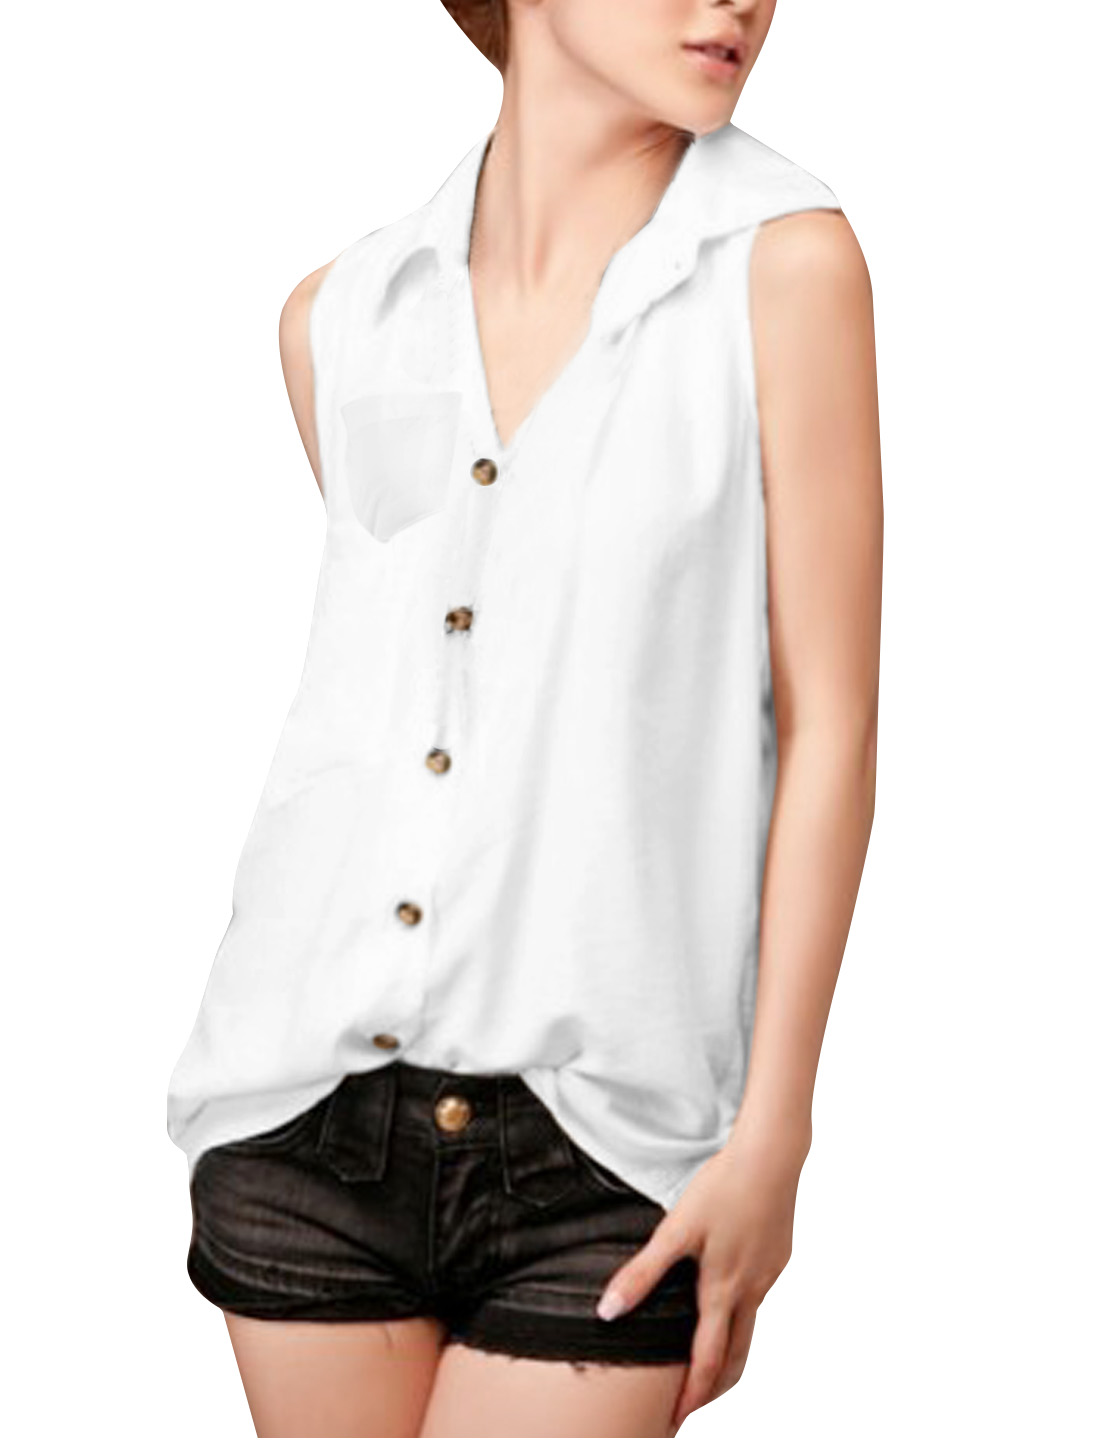 Women Newly White Point Collar Sleeveless Chest Pocket Design Blouse L